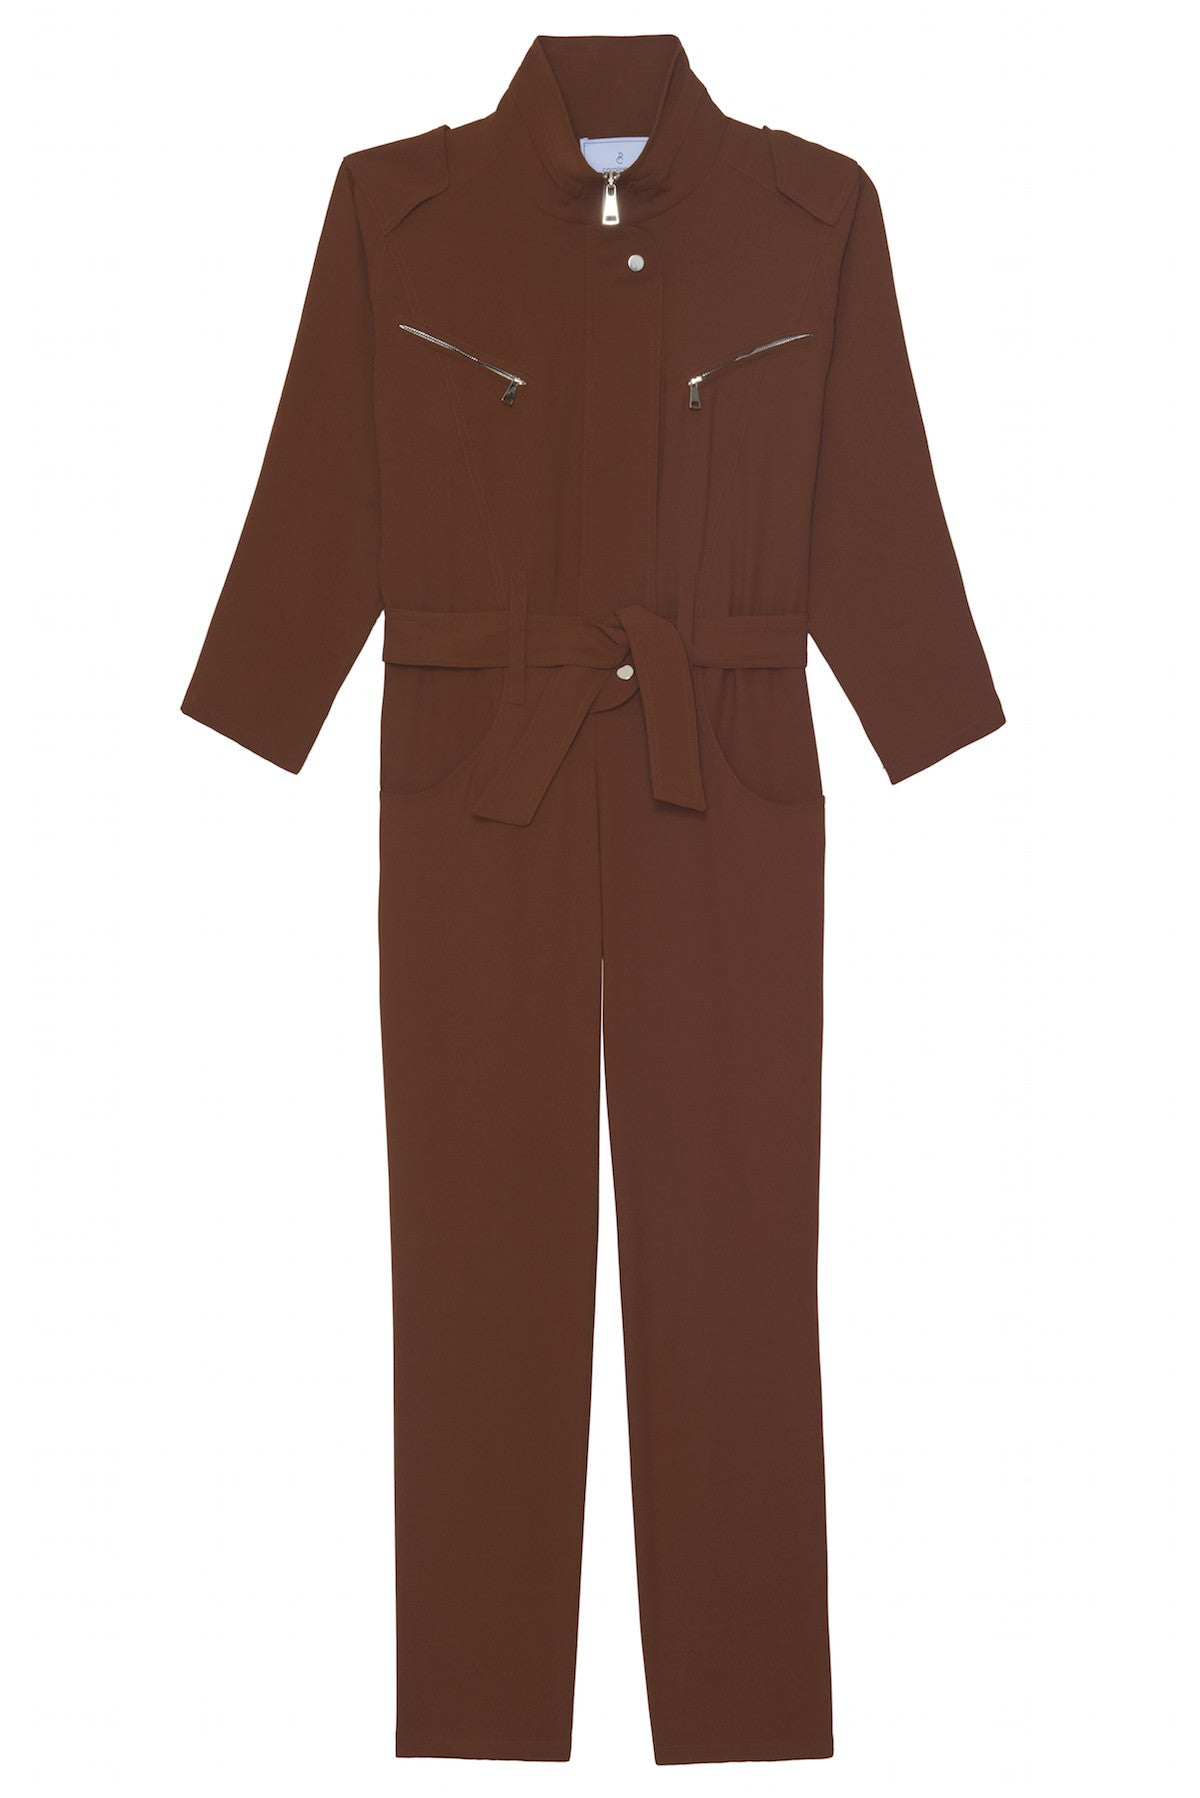 ocher brown jumpsuit